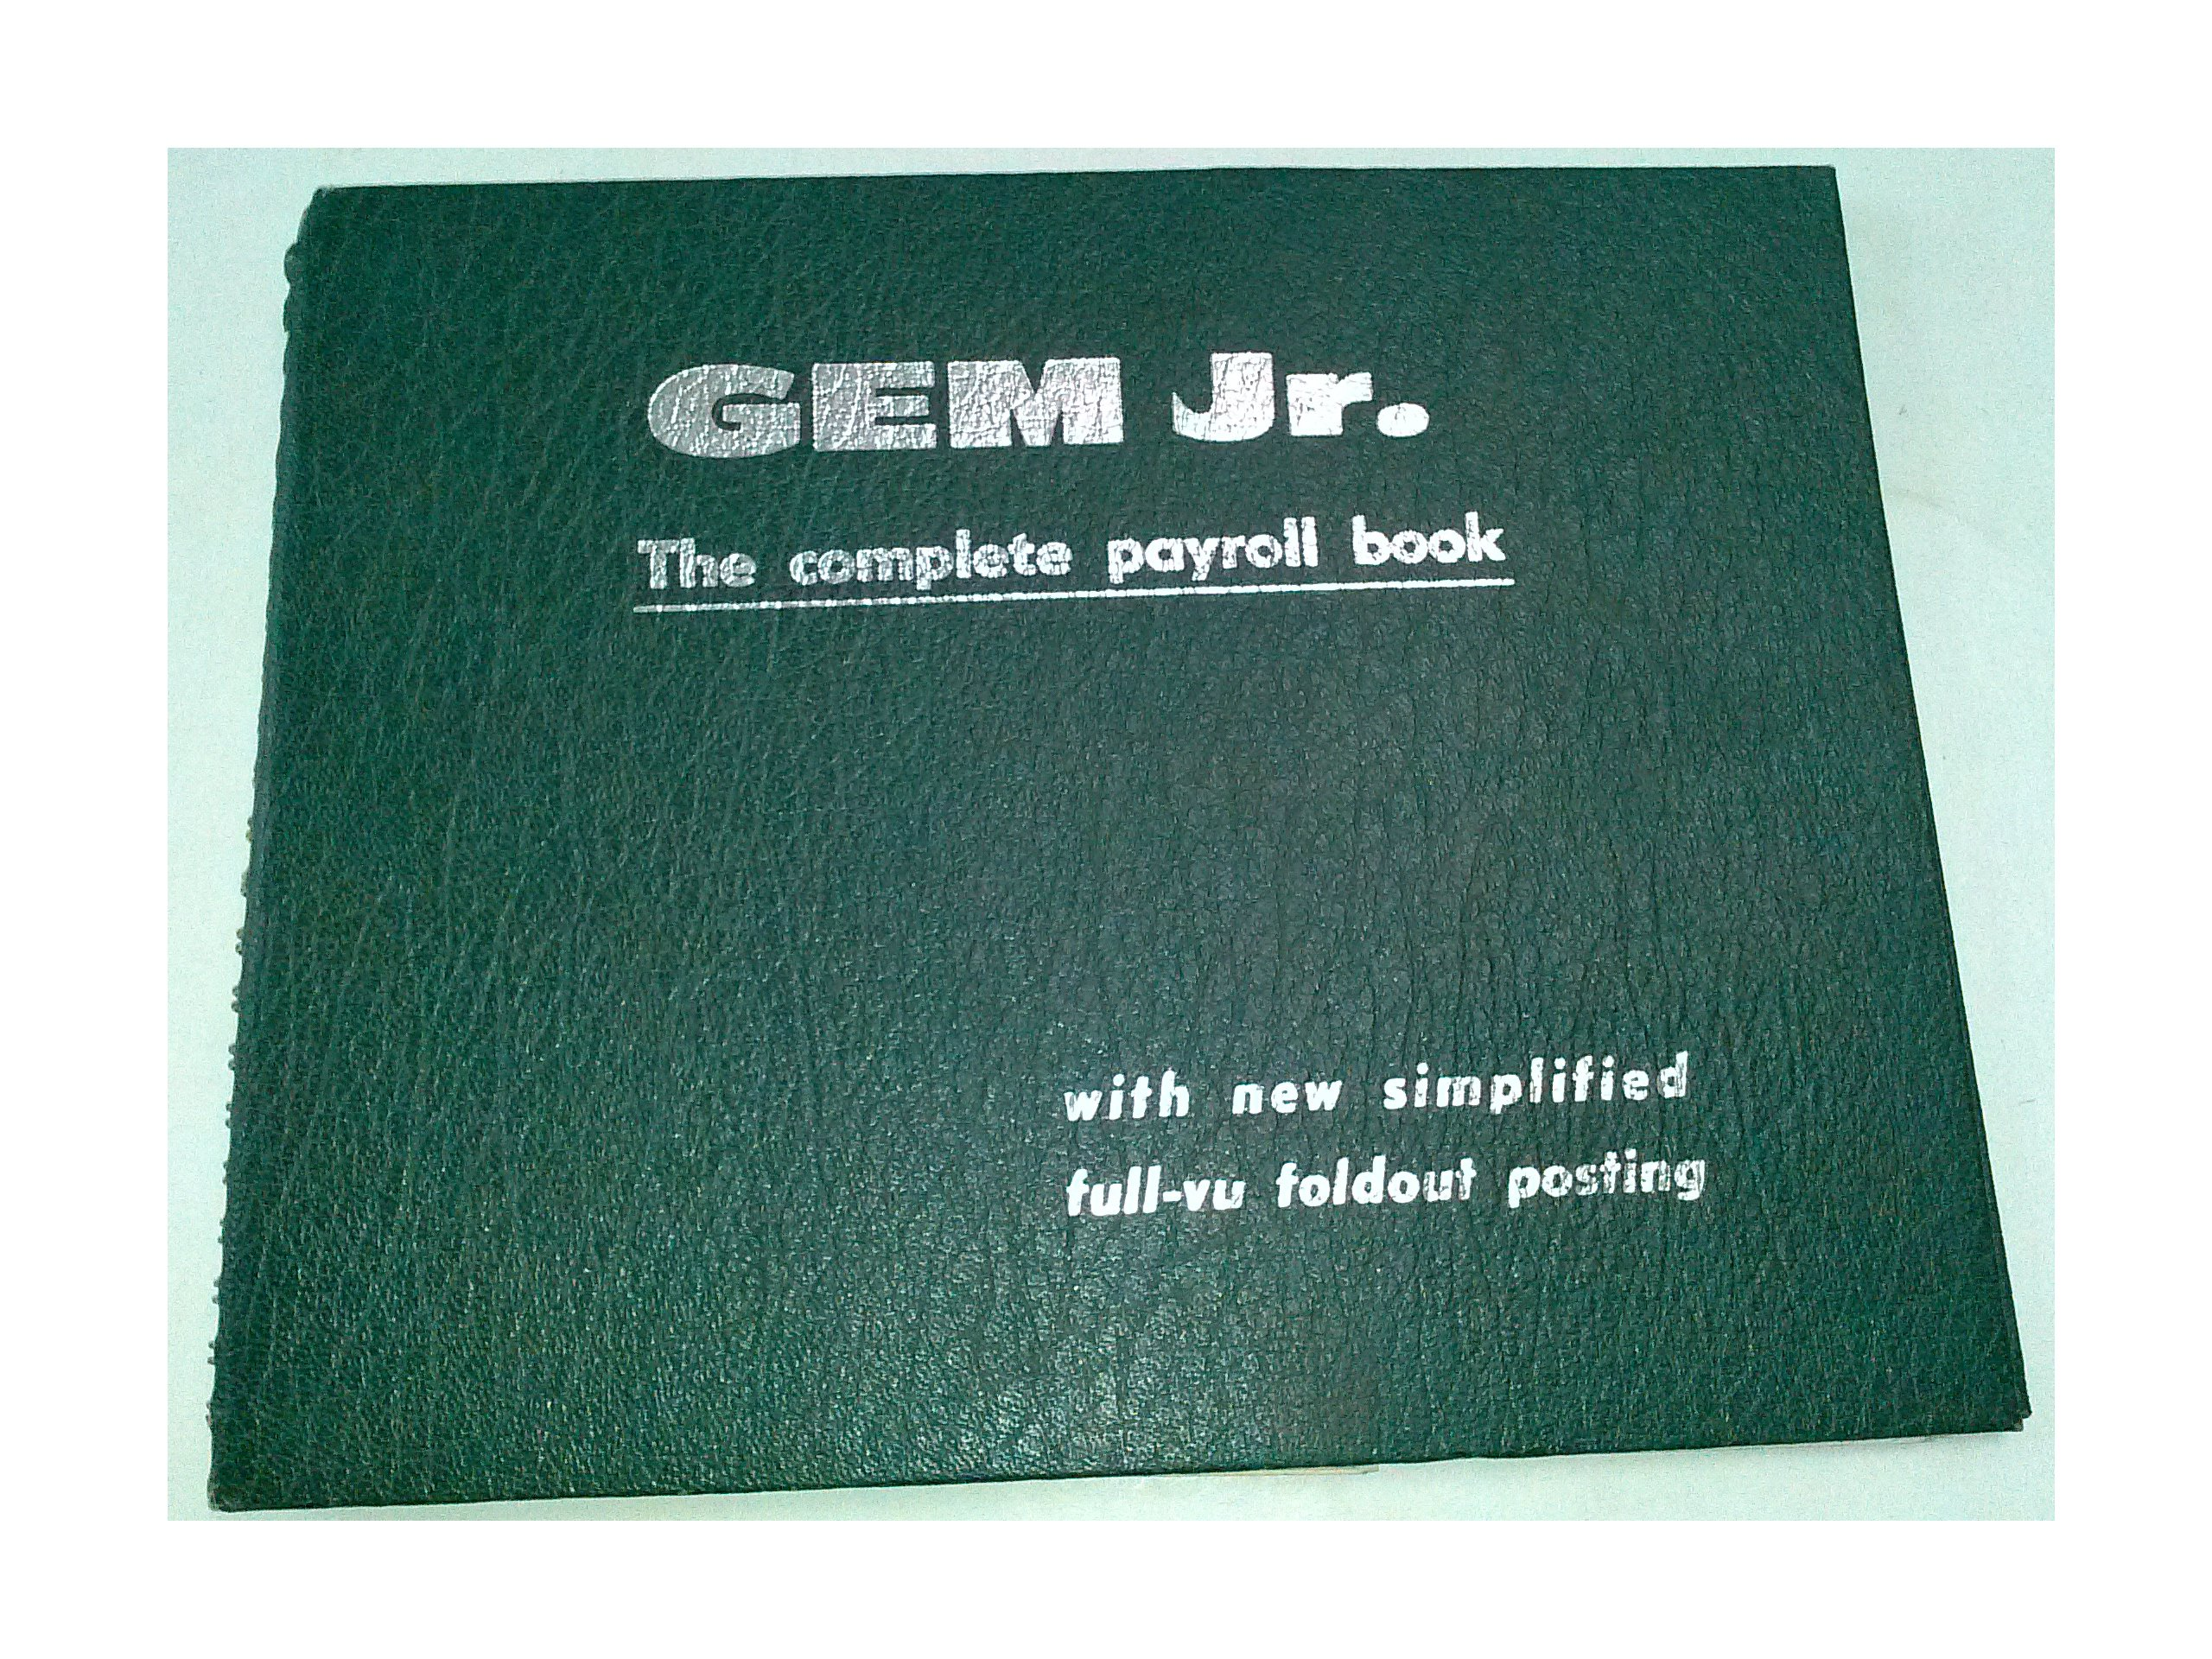 Gem Jr. Complete Payroll Book by Gem Jr.